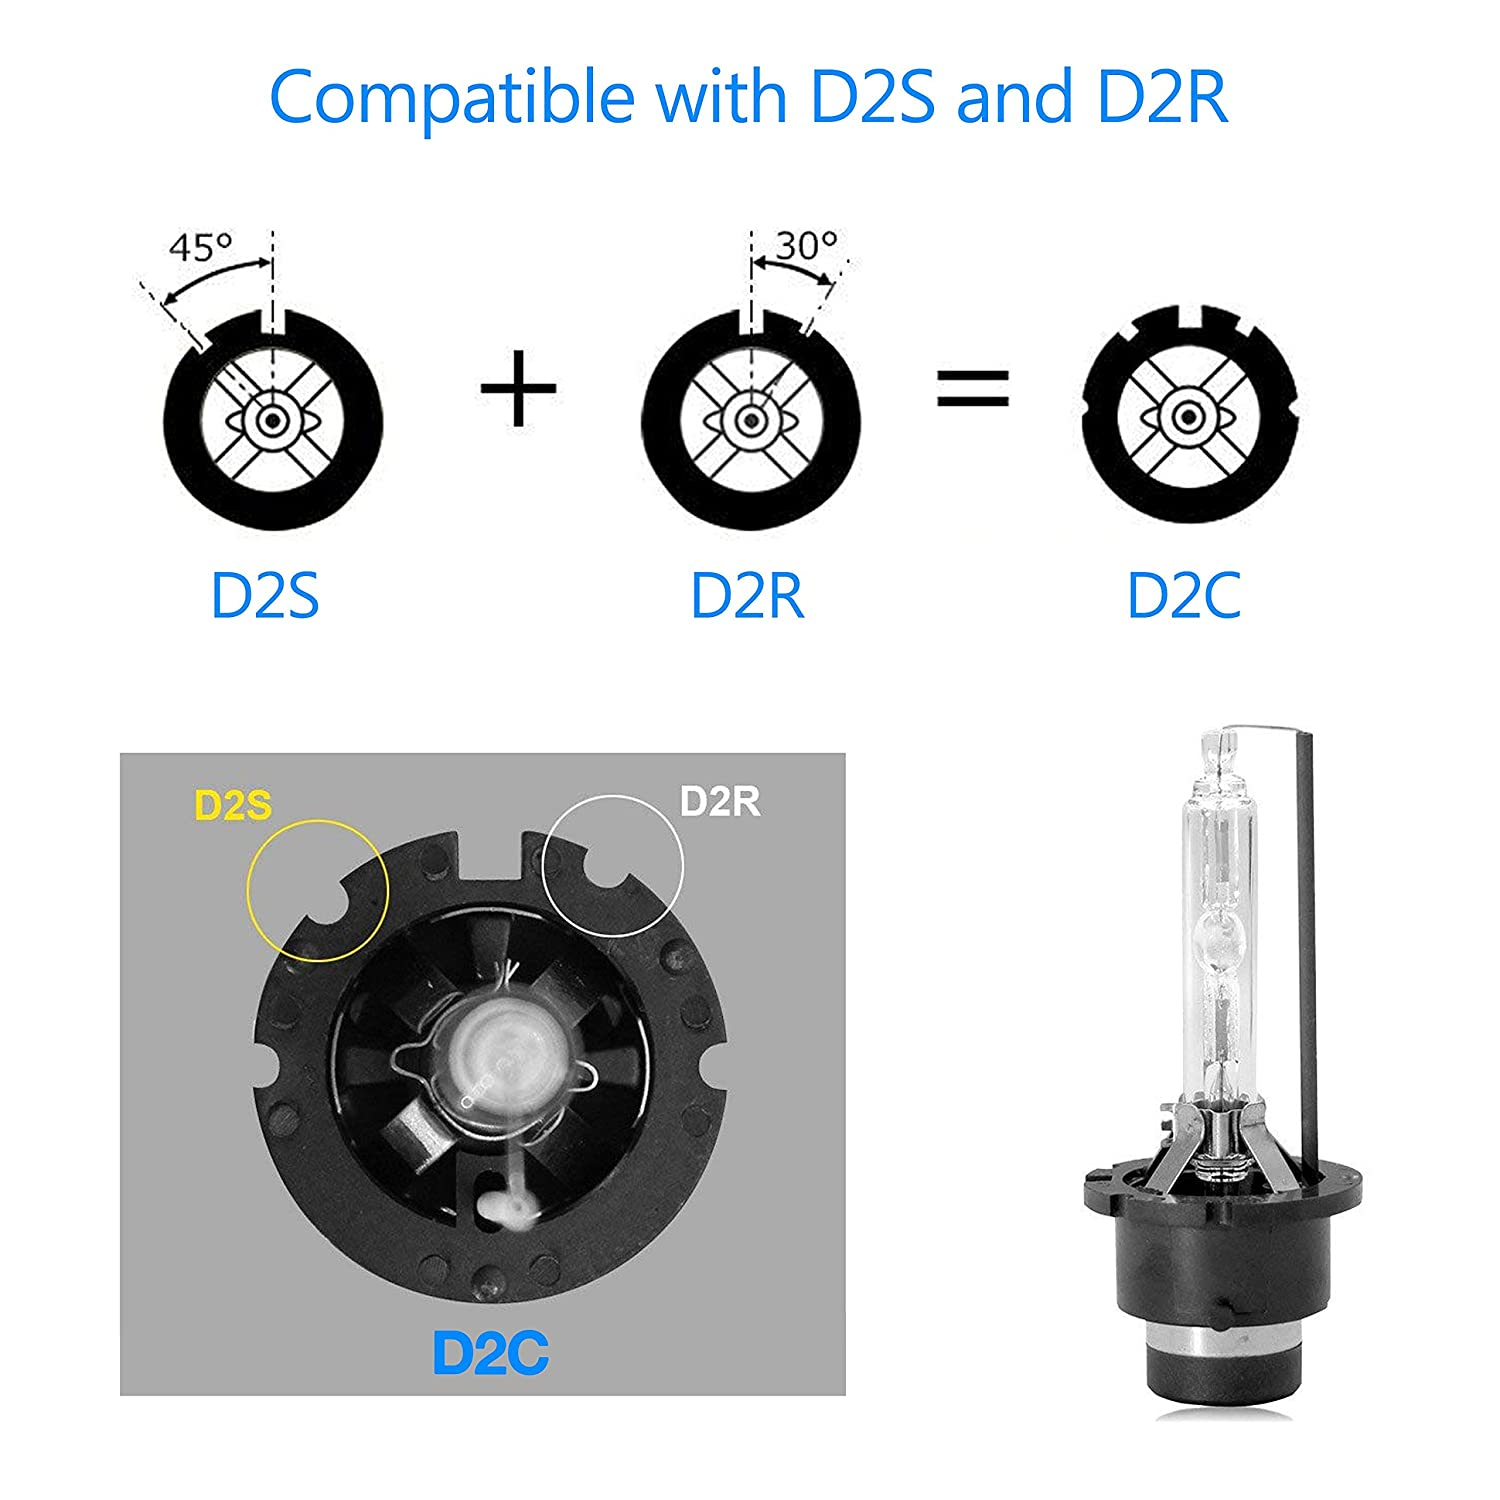 Pack of 2 EKYLIN Car Auto D3S Xenon Head Lights HID Lamps Replacement Bulb 6000K High Brightness Diamond White Headlight Metal Chassis 35W 12V